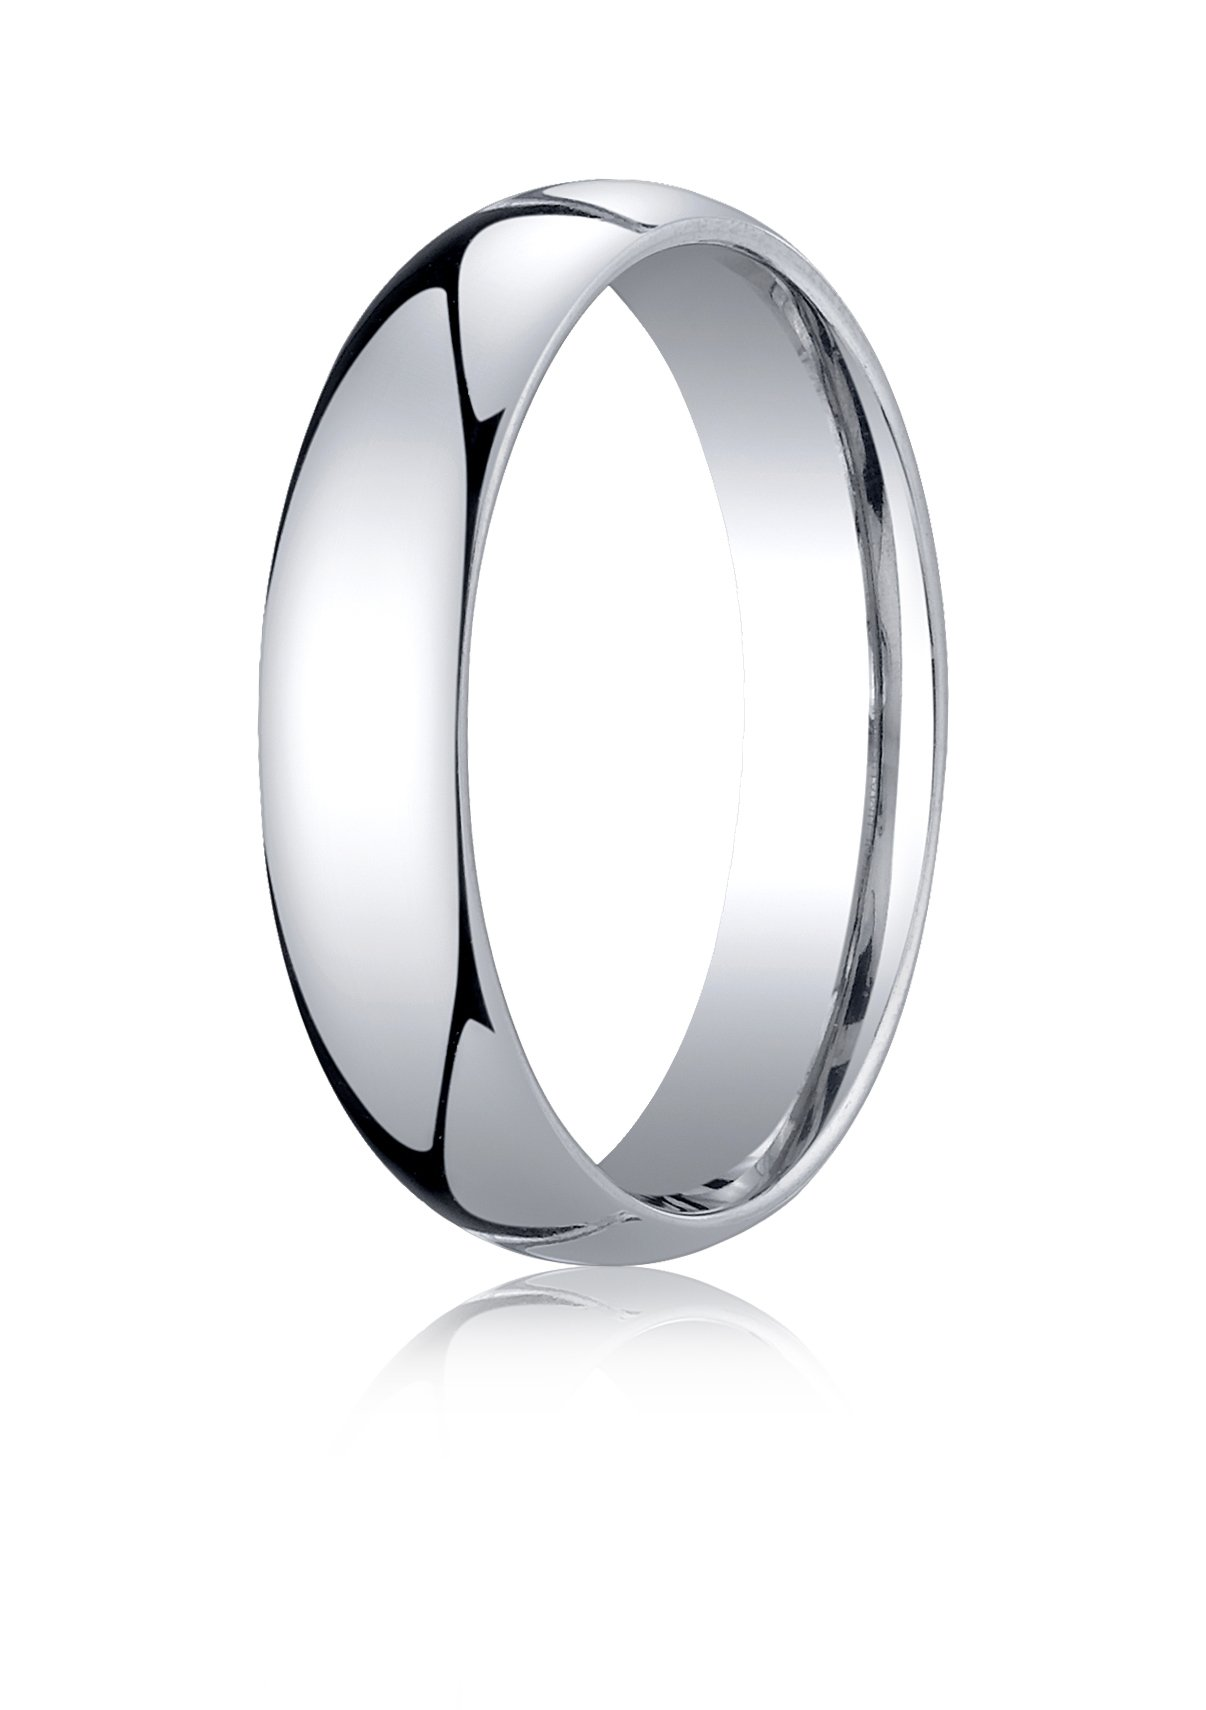 Mens 10K White Gold, 5mm Slightly Domed Standard Comfort-Fit Ring (sz 9.5) by Aetonal (Image #1)